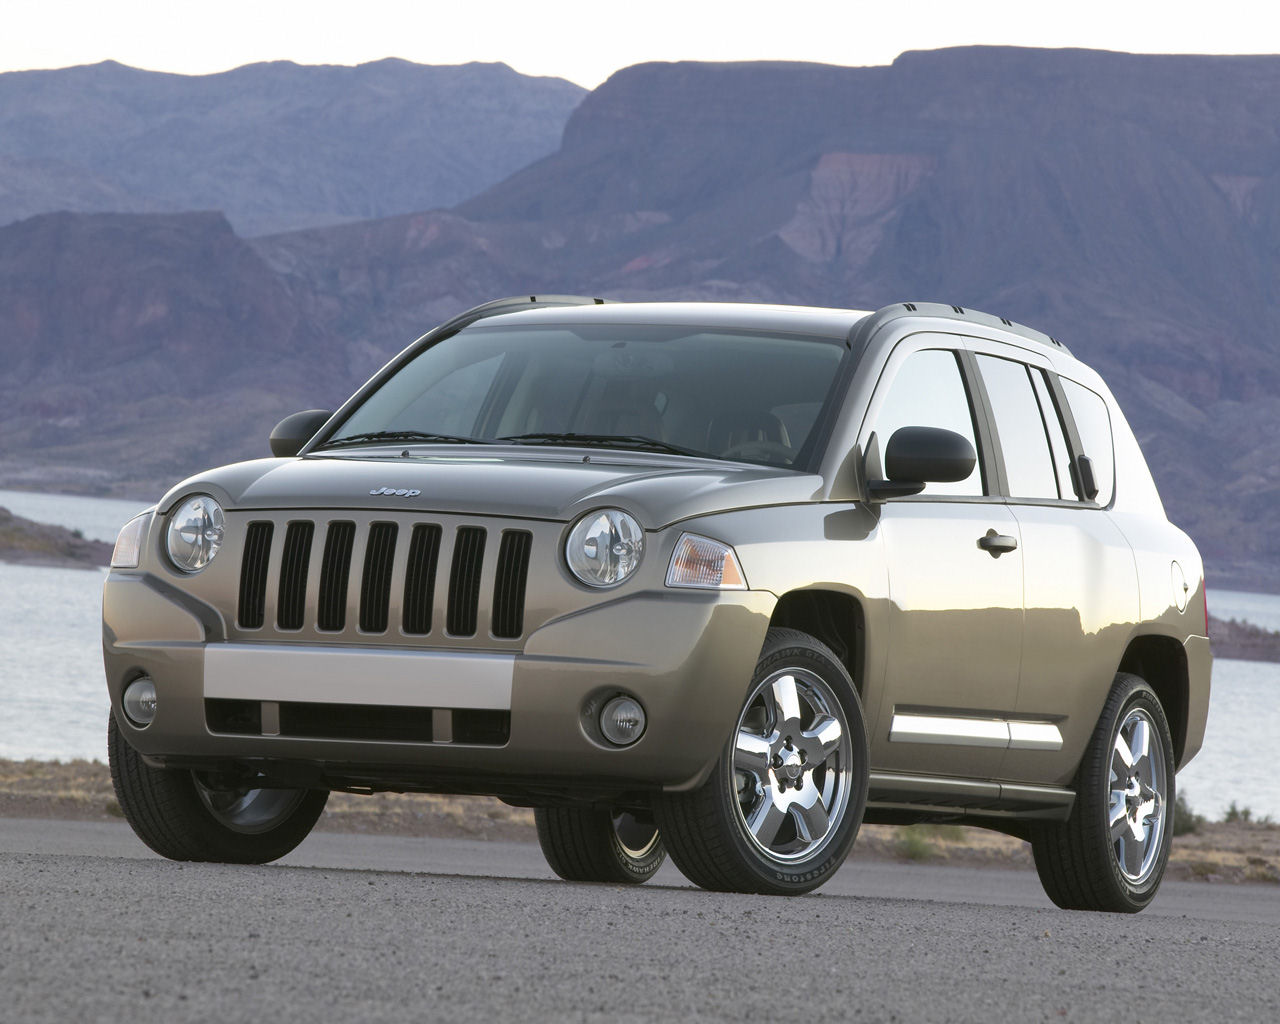 on the Jeep Compass wallpaper below and choose Set as Background 1280x1024